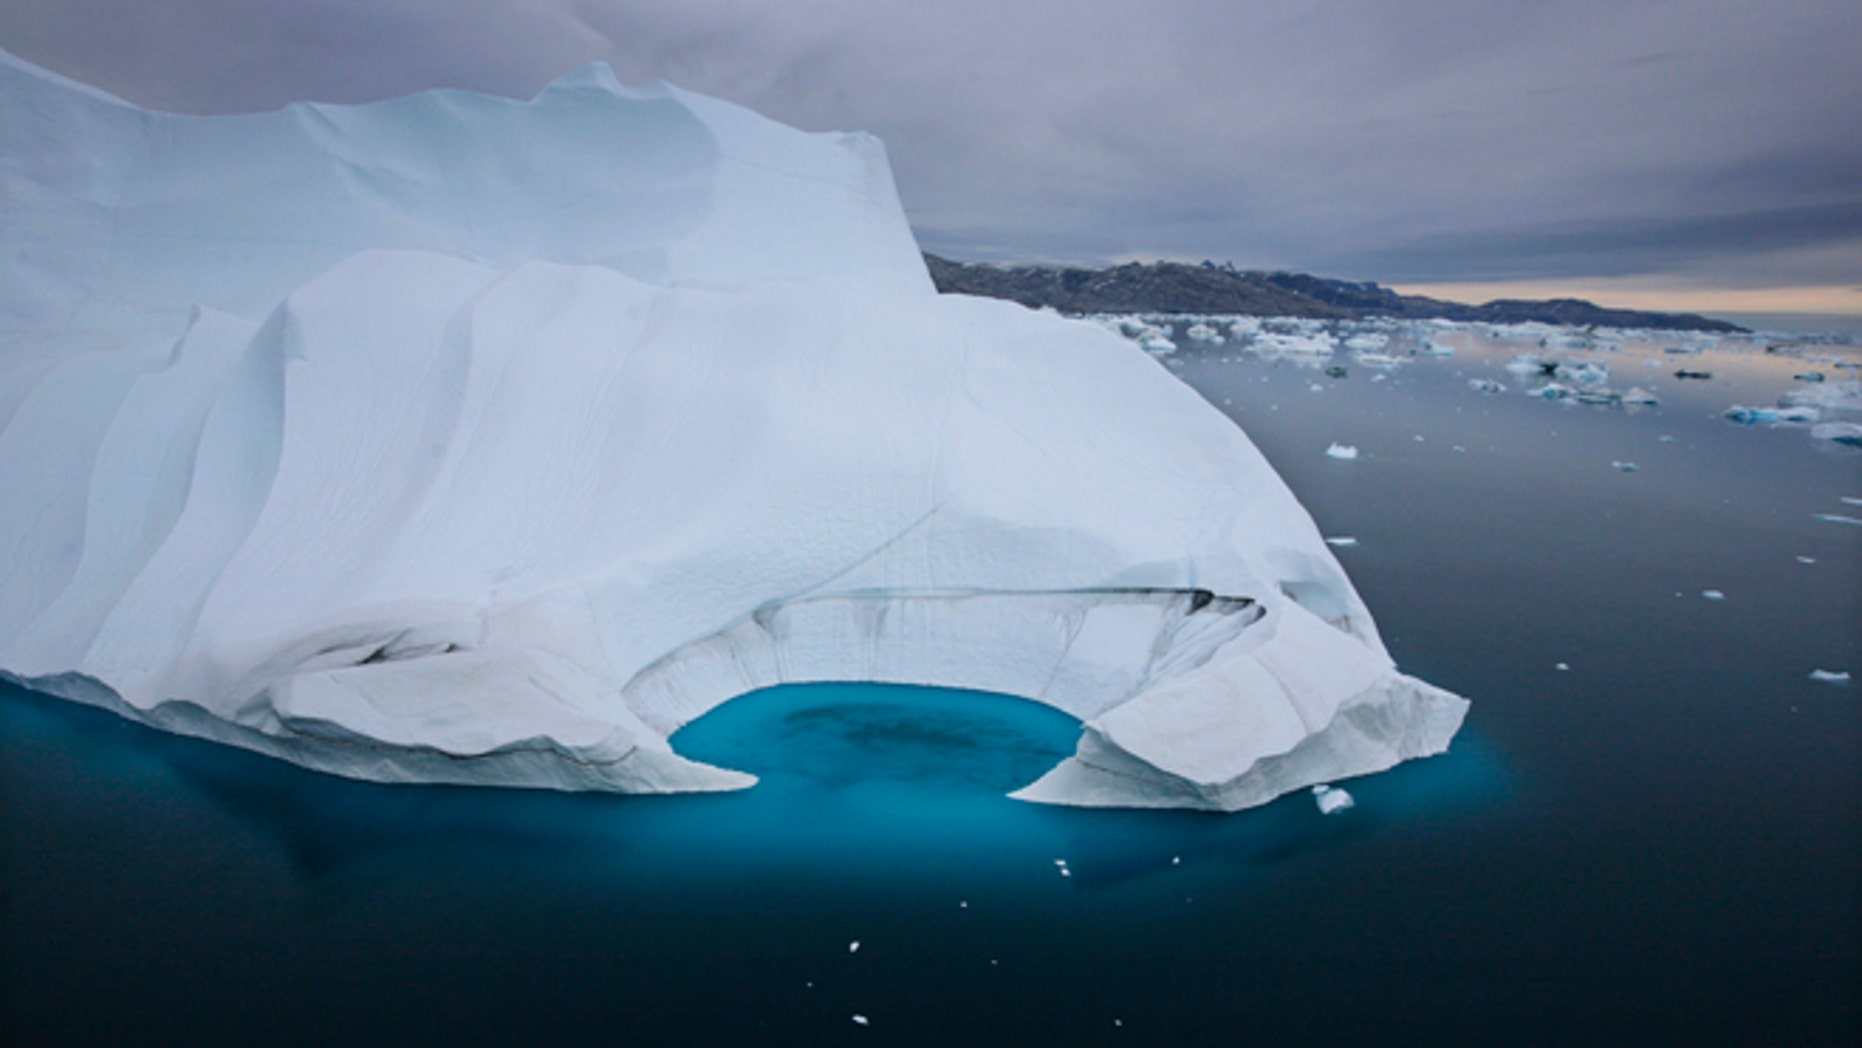 Scientists who are fine-tuning a landmark U.N. report on climate change are struggling to explain why global warming appears to have slowed down in the past 15 years even as greenhouse gas emissions keep rising.